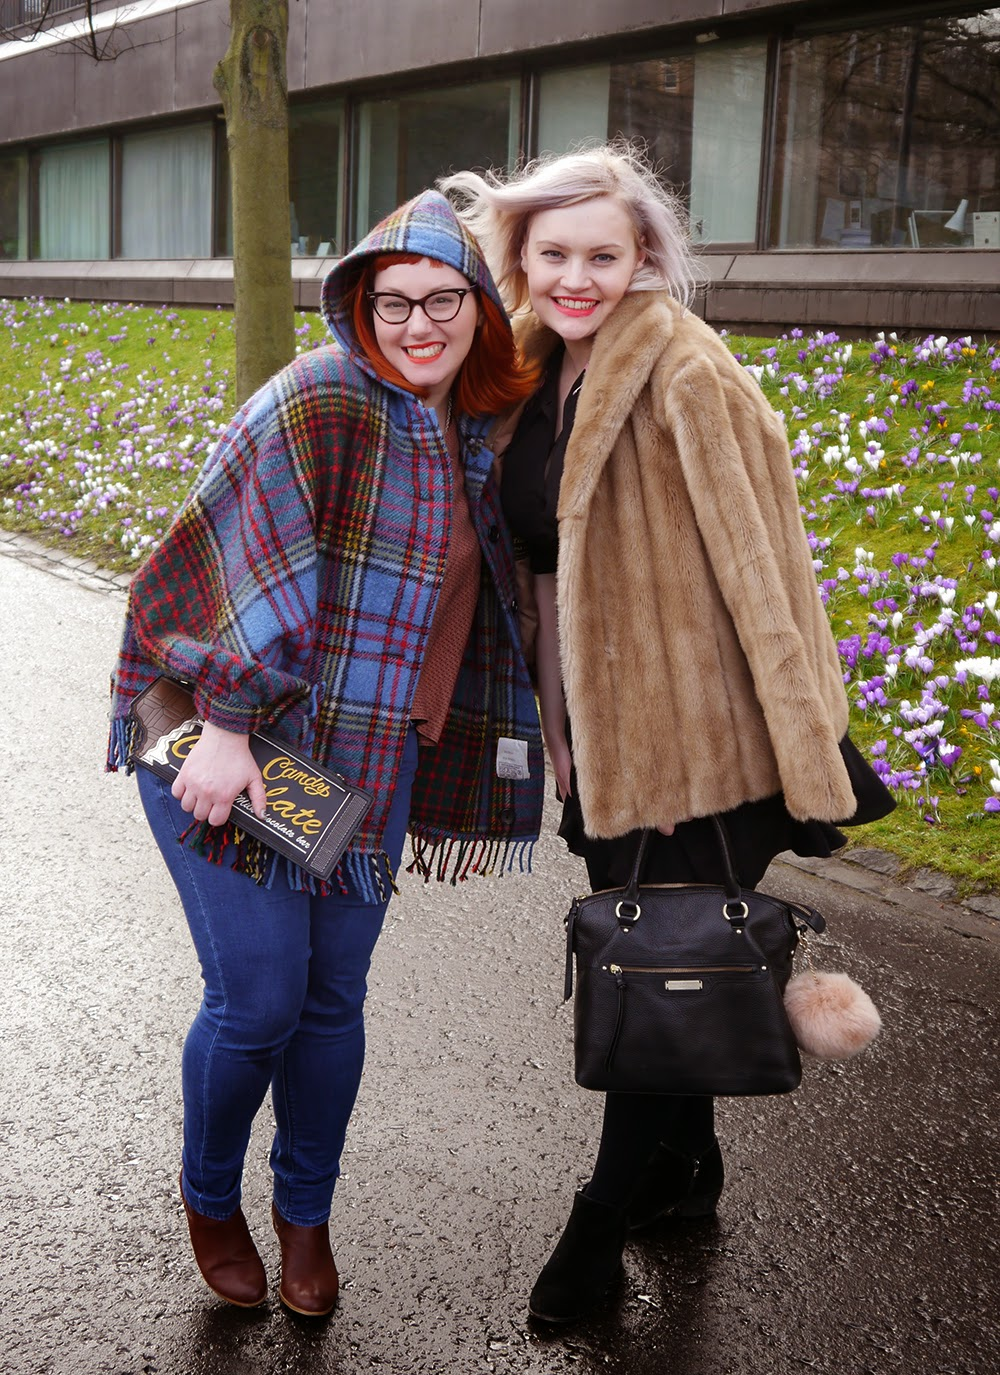 Edinburgh Fashion Week, Scottish Bloggers, Scottish Blogging Duo, Edinburgh Style, Tartan Cape, Faux Fur, Coat, Edinburgh Street Style, Vintage style